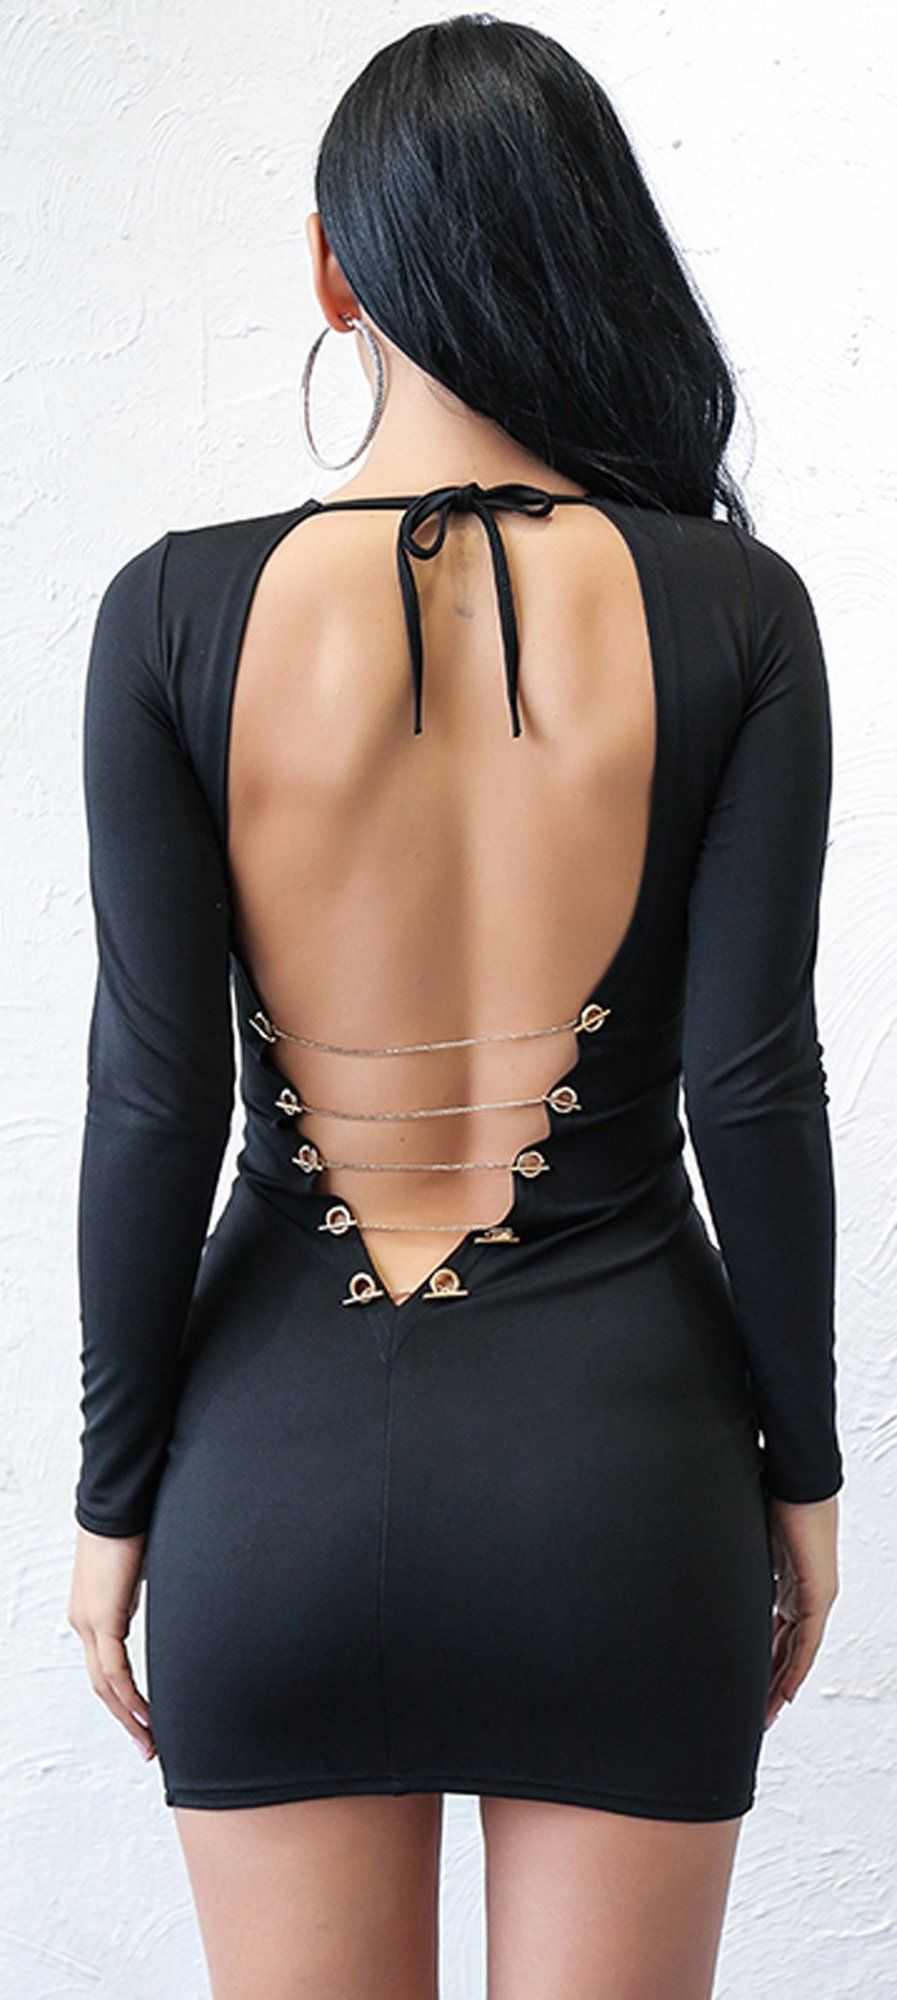 2d339fae7580 Hot Baddie Dresses Outfit Ideas for Women - Tight Lace Up Backless Corset Black  Dress for Going Out Night Party Bodycon - trajes de fiesta calientes ideas  ...